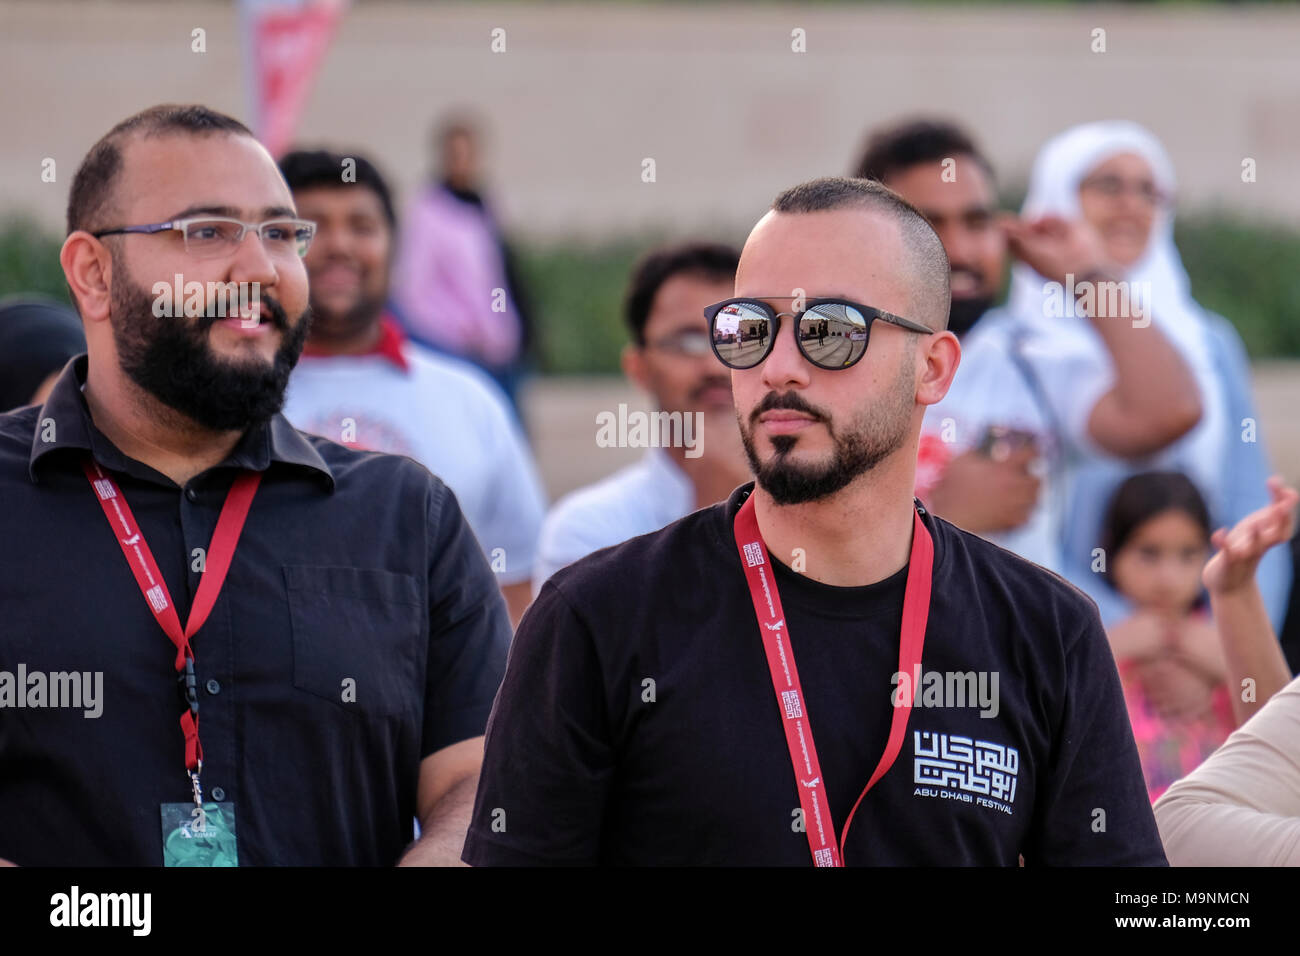 A young Arab event organizer (event security) wearing sunglasses at Event in Umm Al Emirat Park, Abu Dhabi, UAE Stock Photo